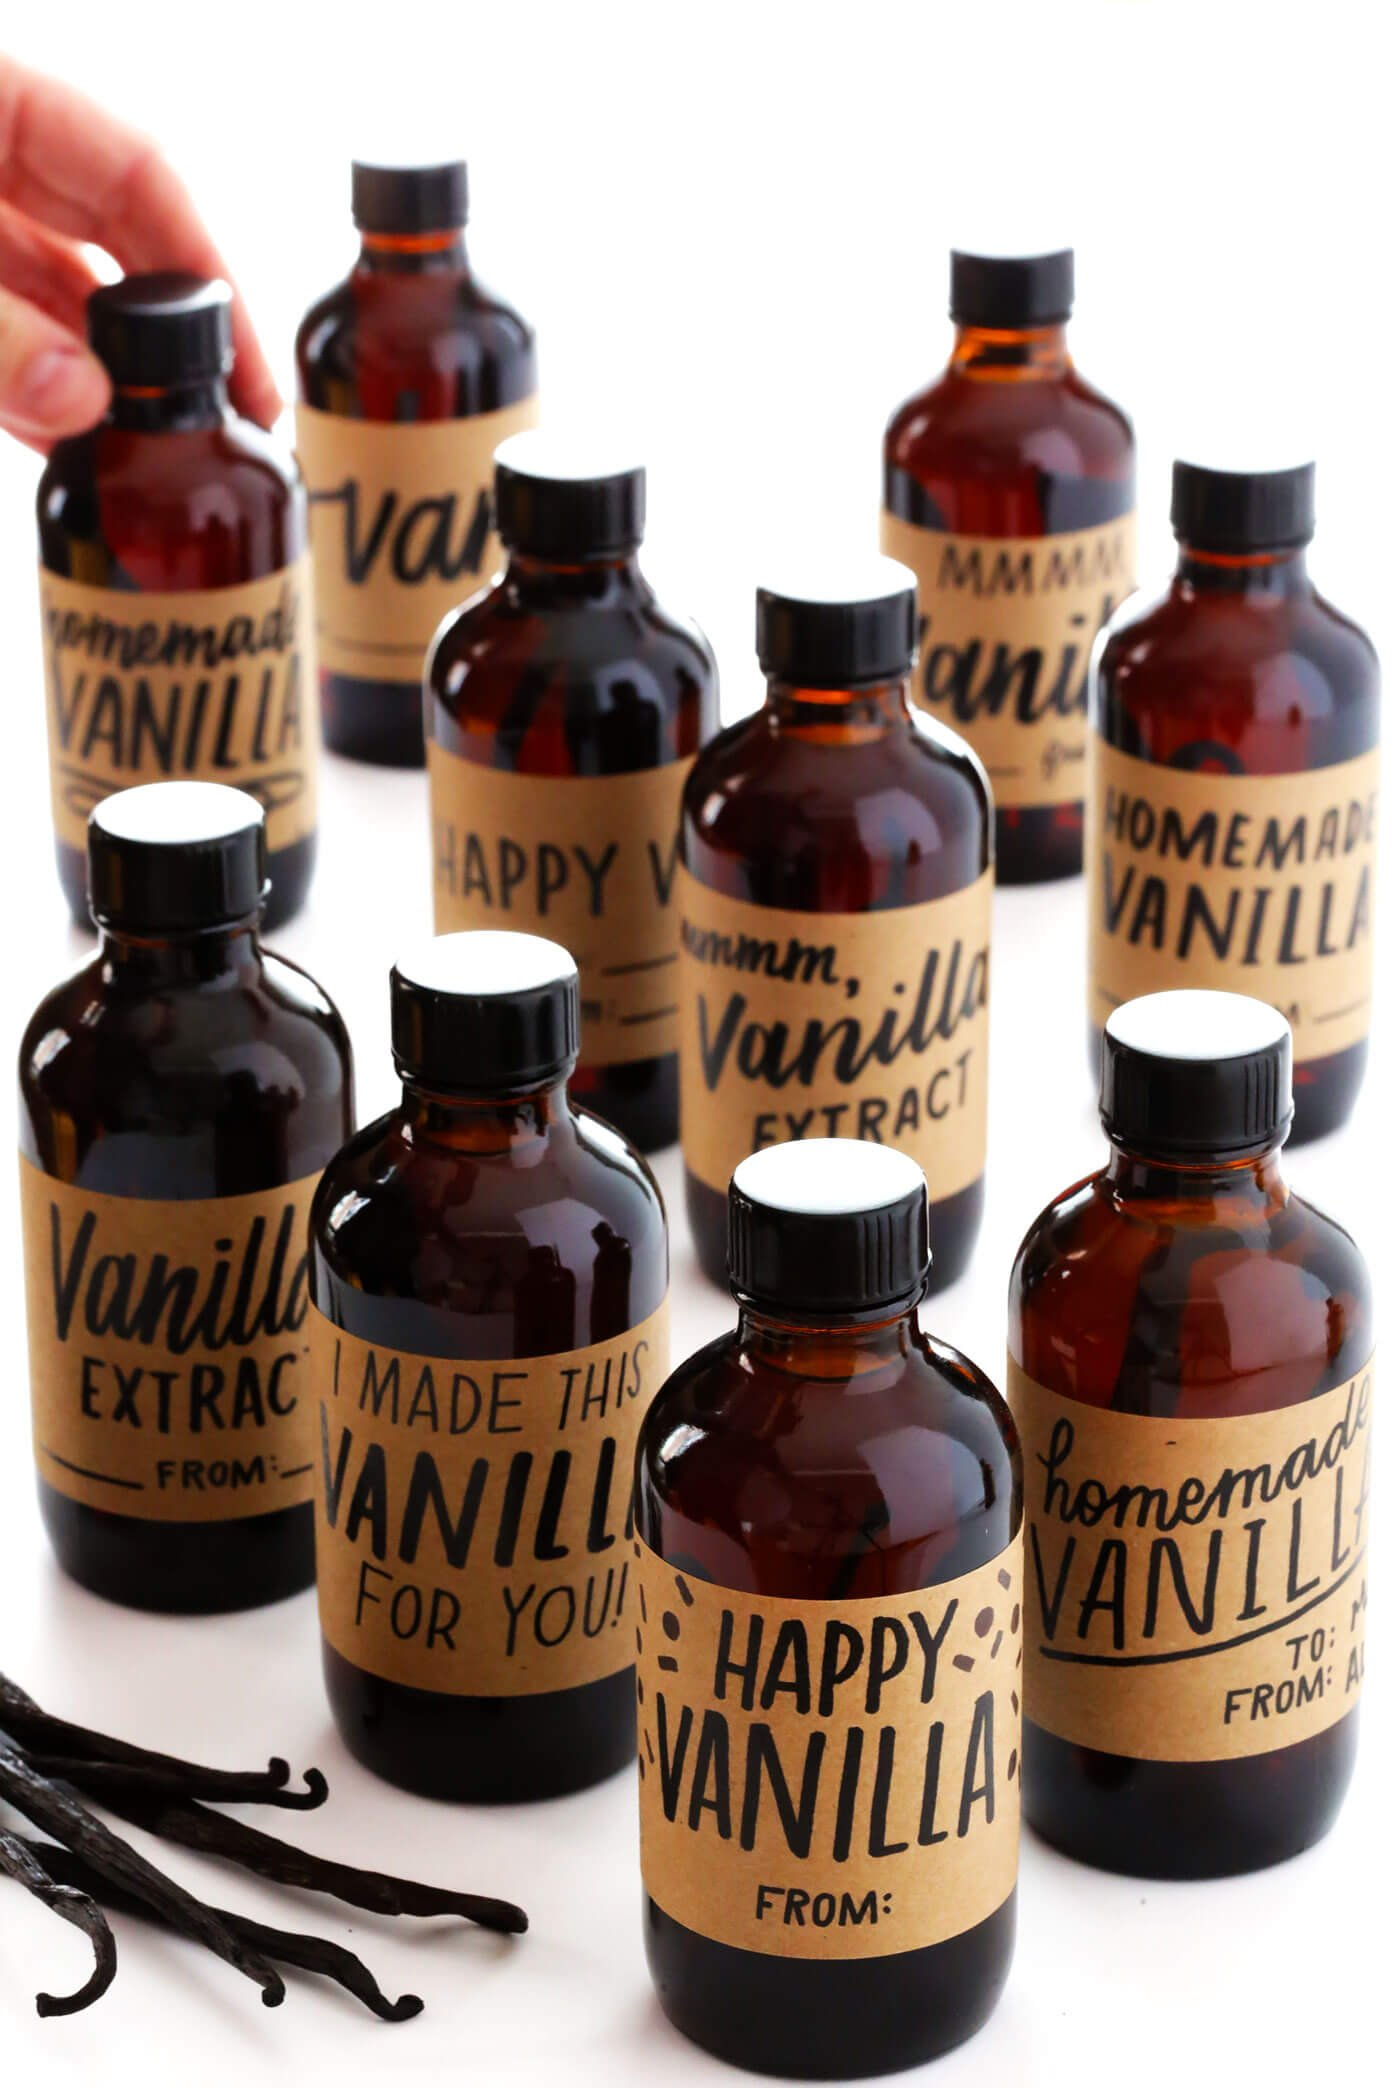 Free Printable Labels for Vanilla Extract